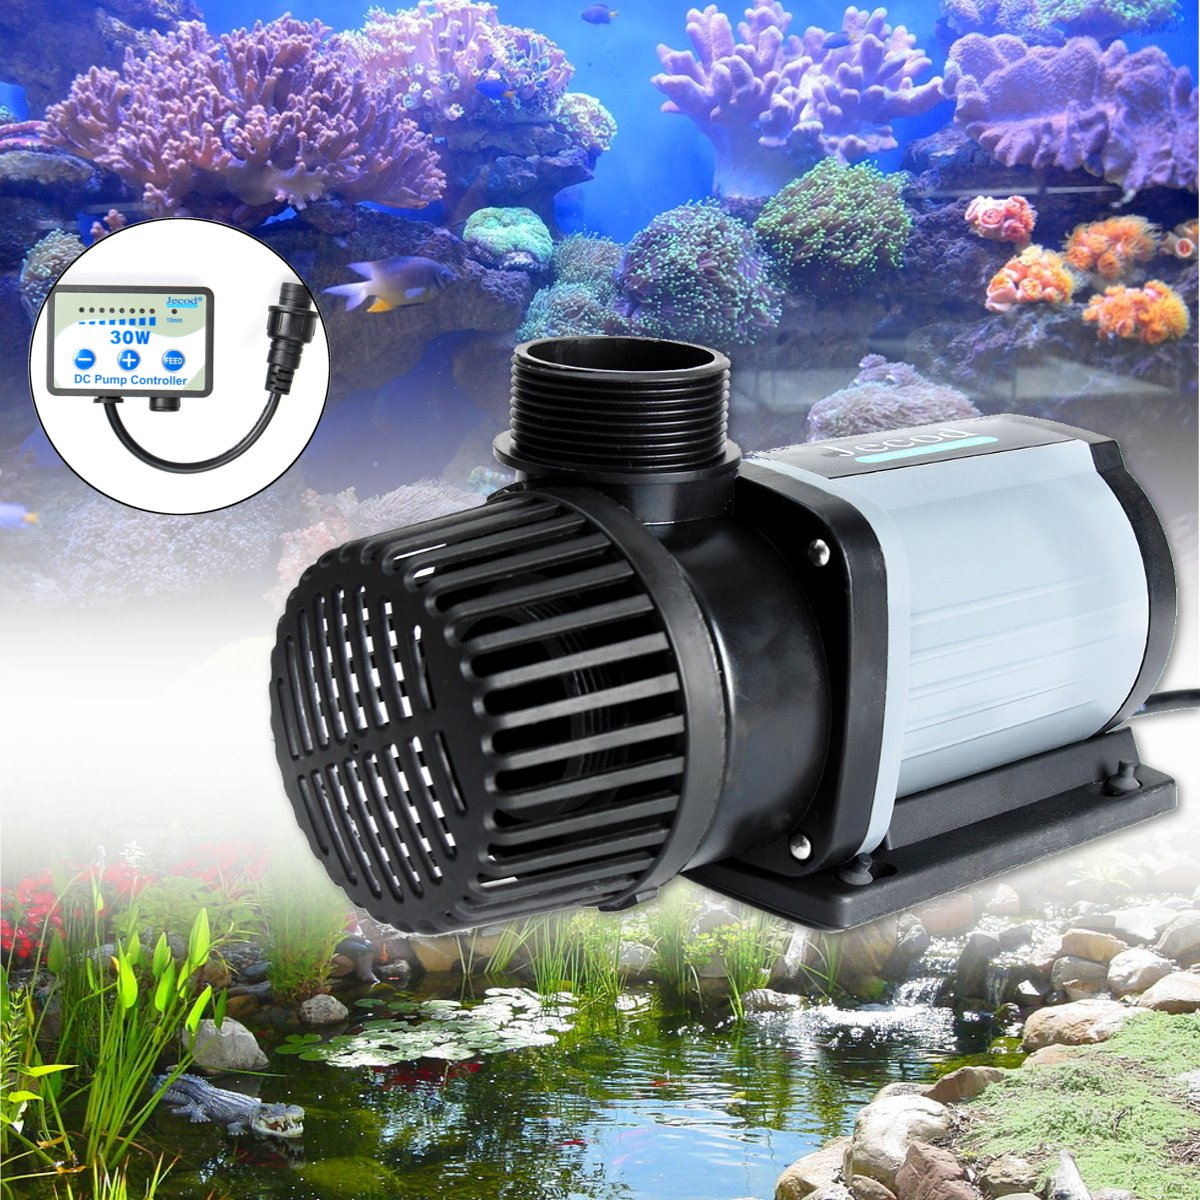 30/50/100W DC Marine Aquarium Pump Submersible 3000L Super Quiet Operation Variable Flow Controller DCS 2000-12000 with Adapter dc 3000 25w quiet electrical aquarium fish tank pump 3000l salt fresh water use submersible pump with flow controller